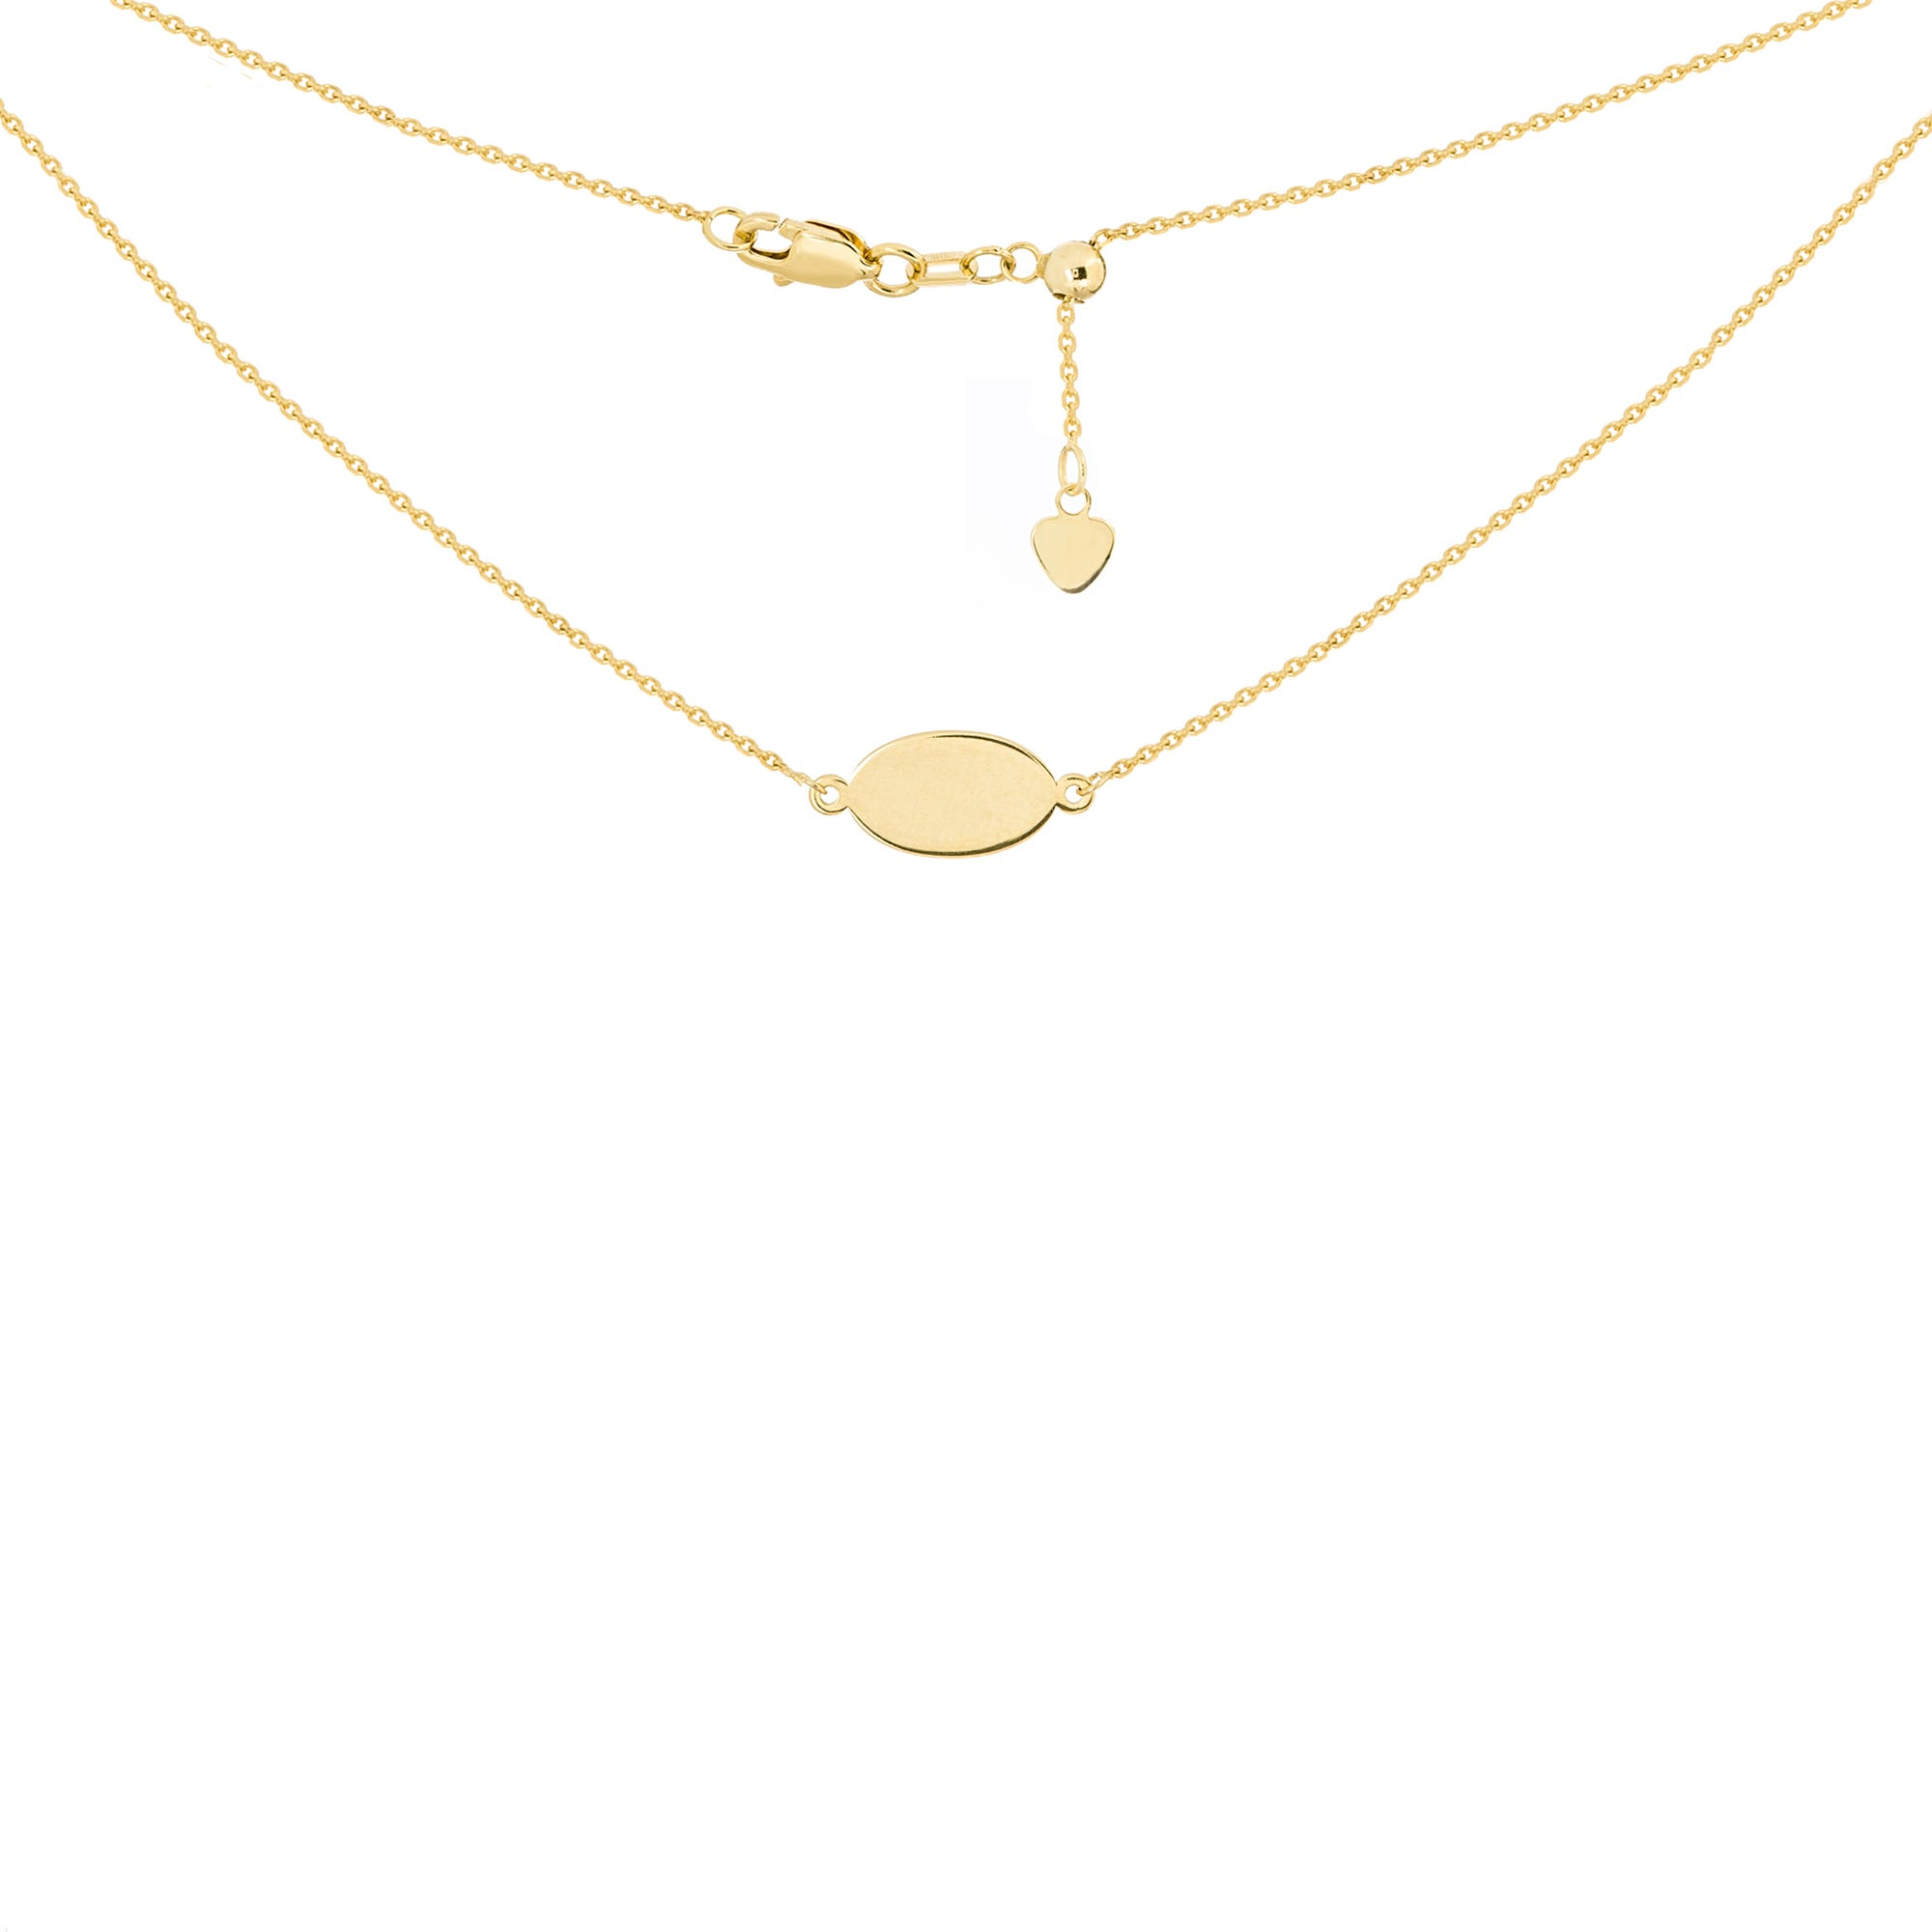 Oval Mini Plate Engravable Adjustable Choker Necklace in 14k Yellow Gold